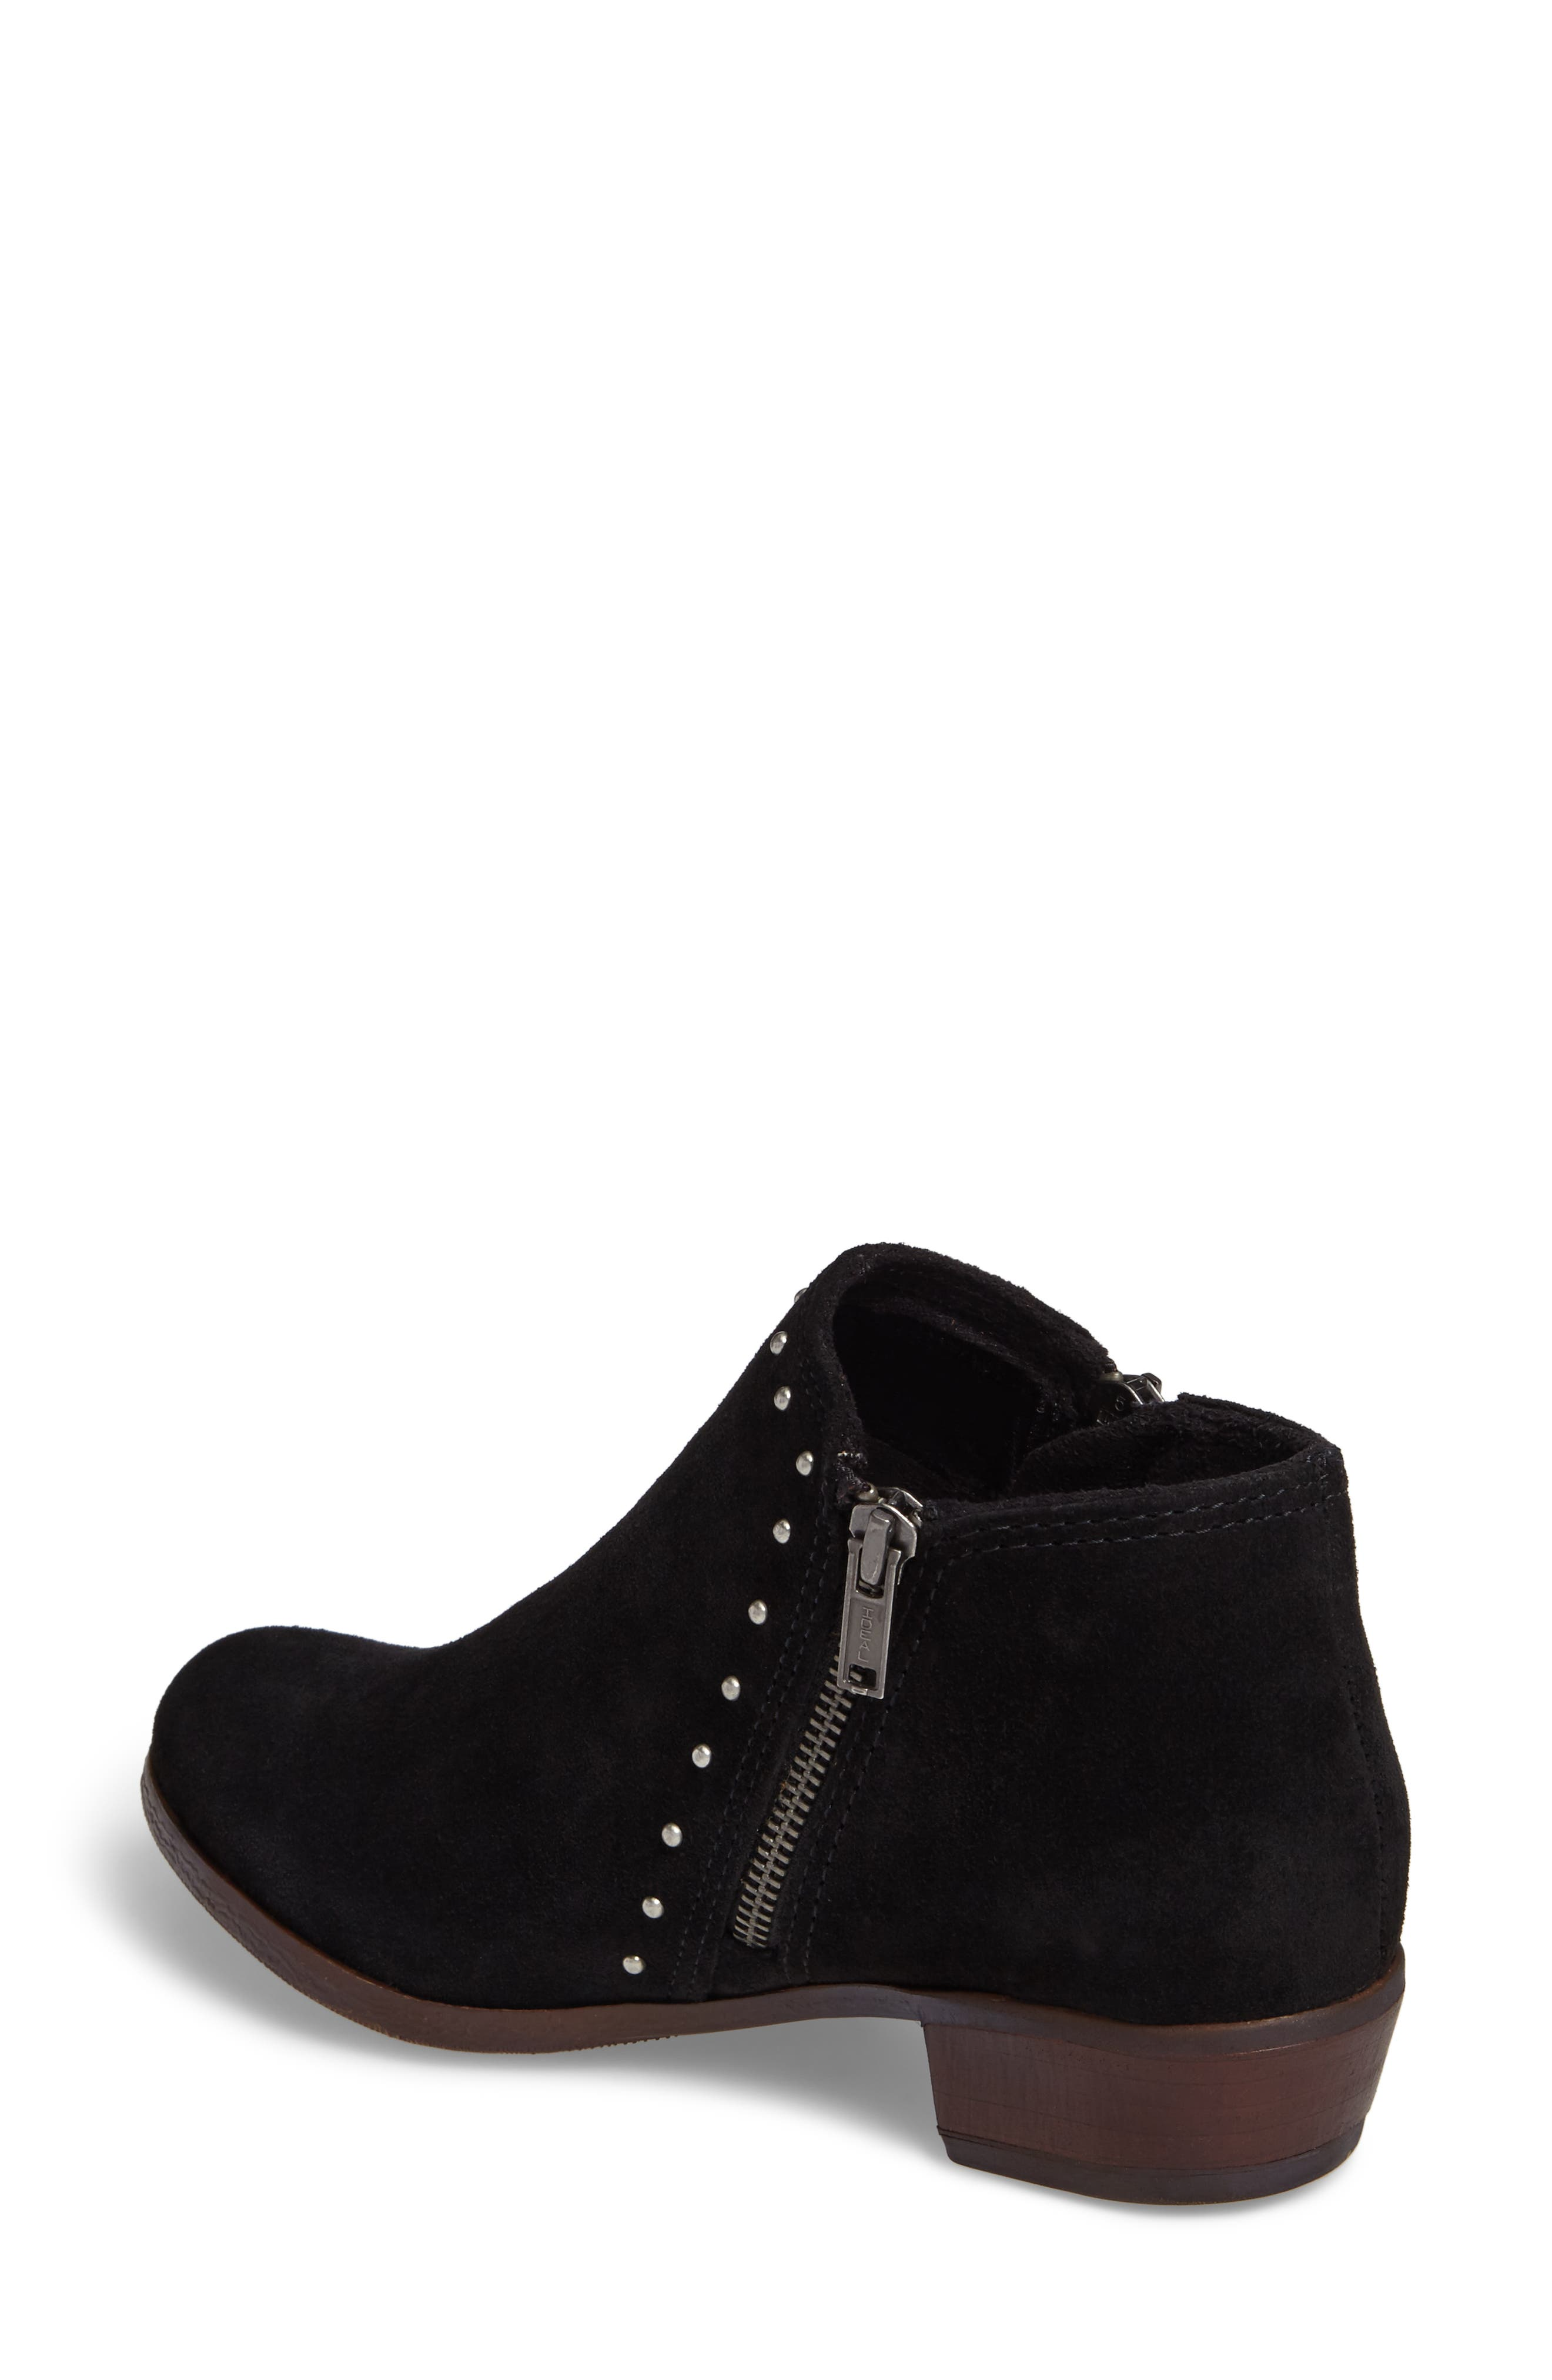 Brie Studded Bootie,                             Alternate thumbnail 2, color,                             BLACK